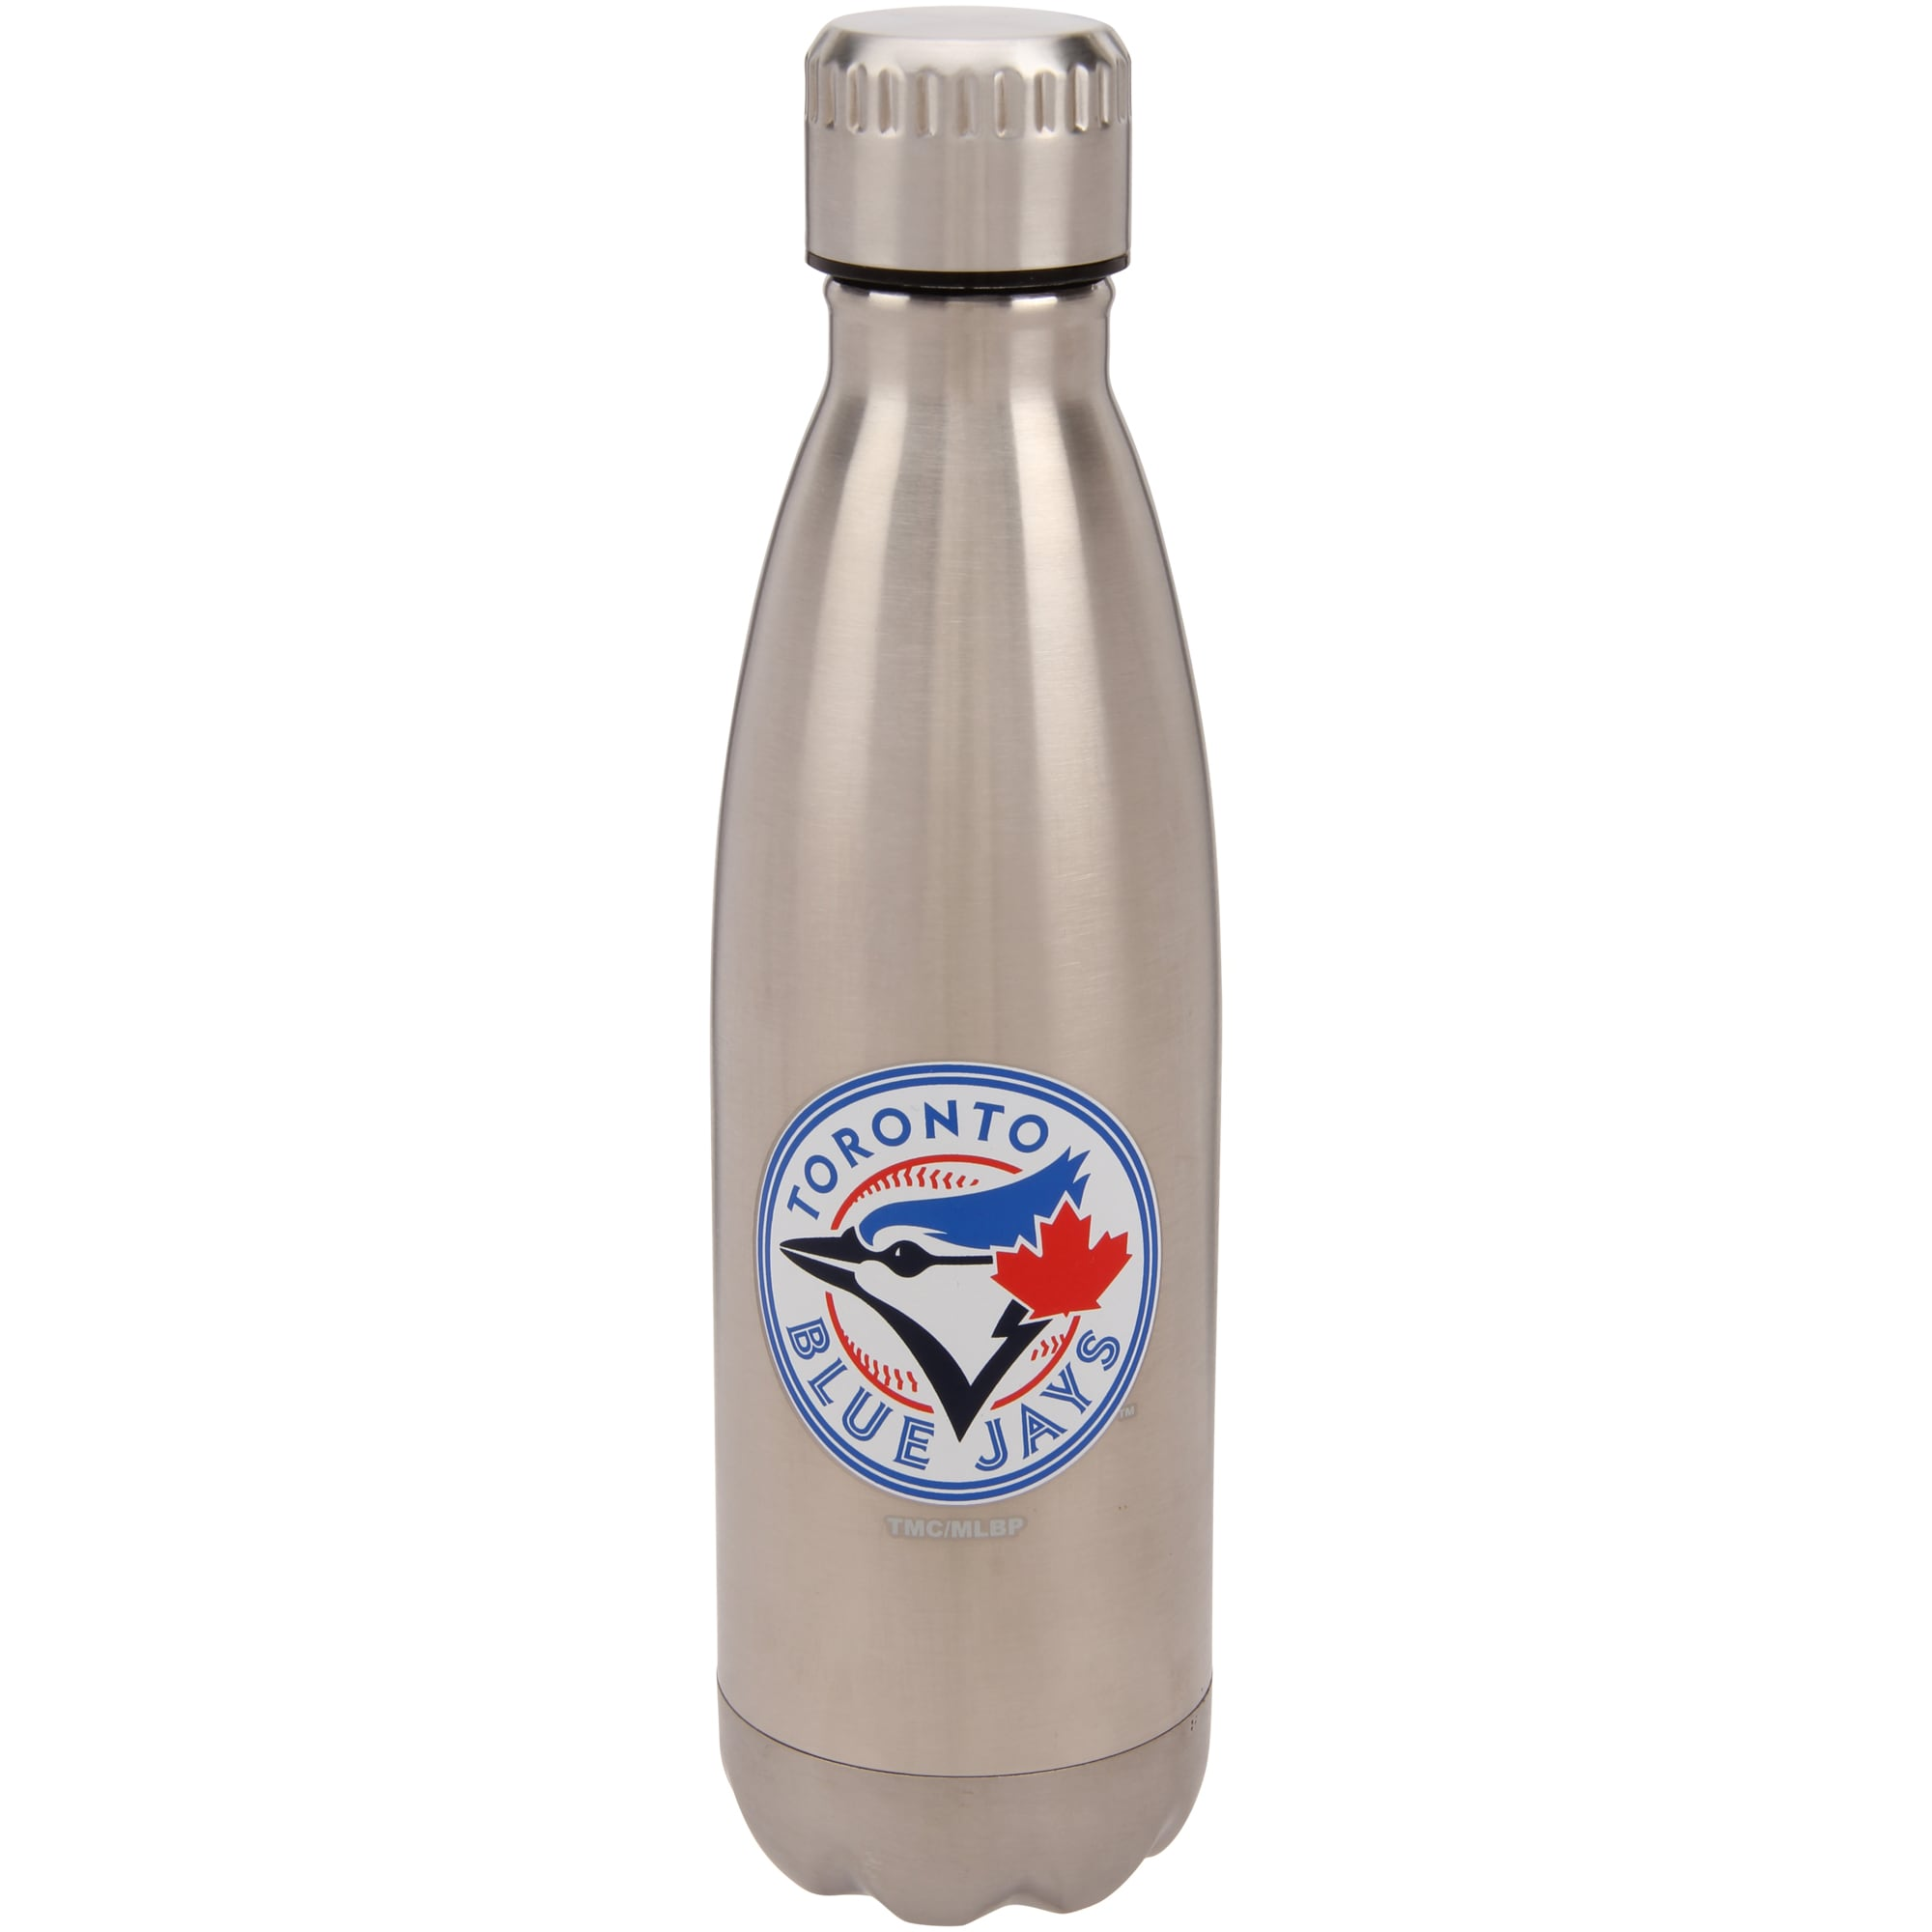 Toronto Blue Jays 16oz. Stainless Steel Water Bottle